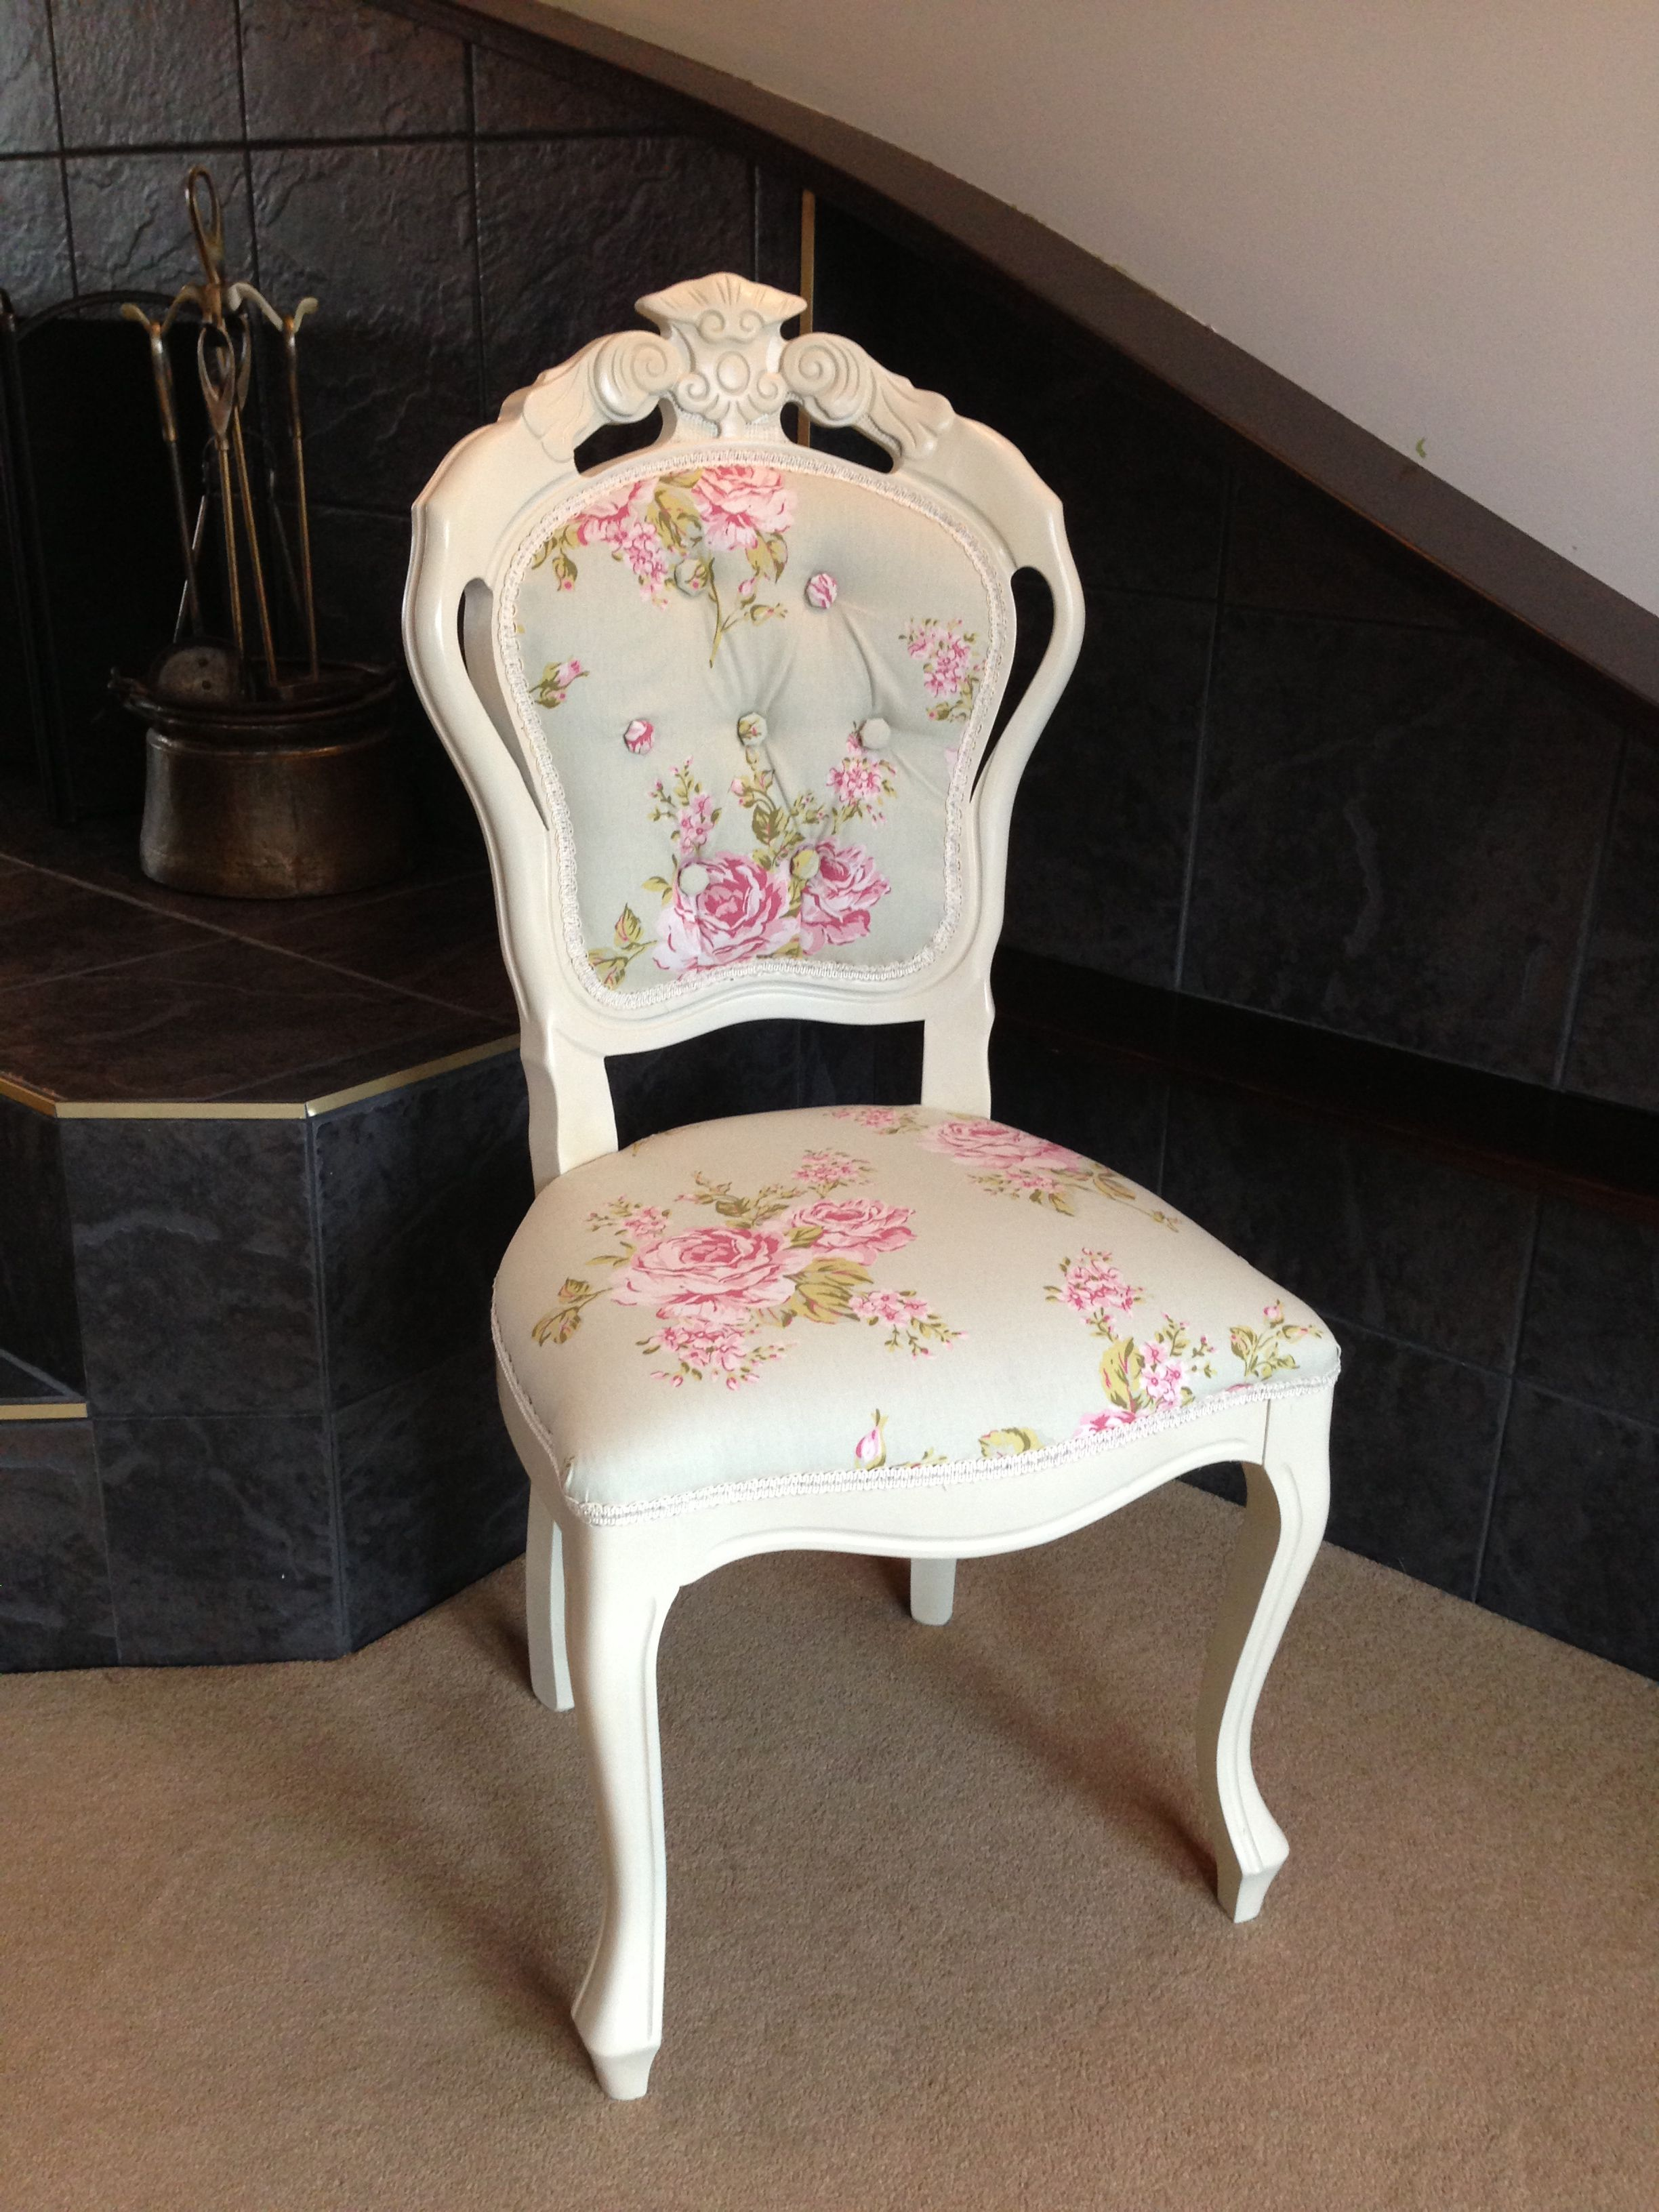 Vintage Shabby Chic Chair Shabby Chic Chairs Shabby Chic Shabby Chic Style